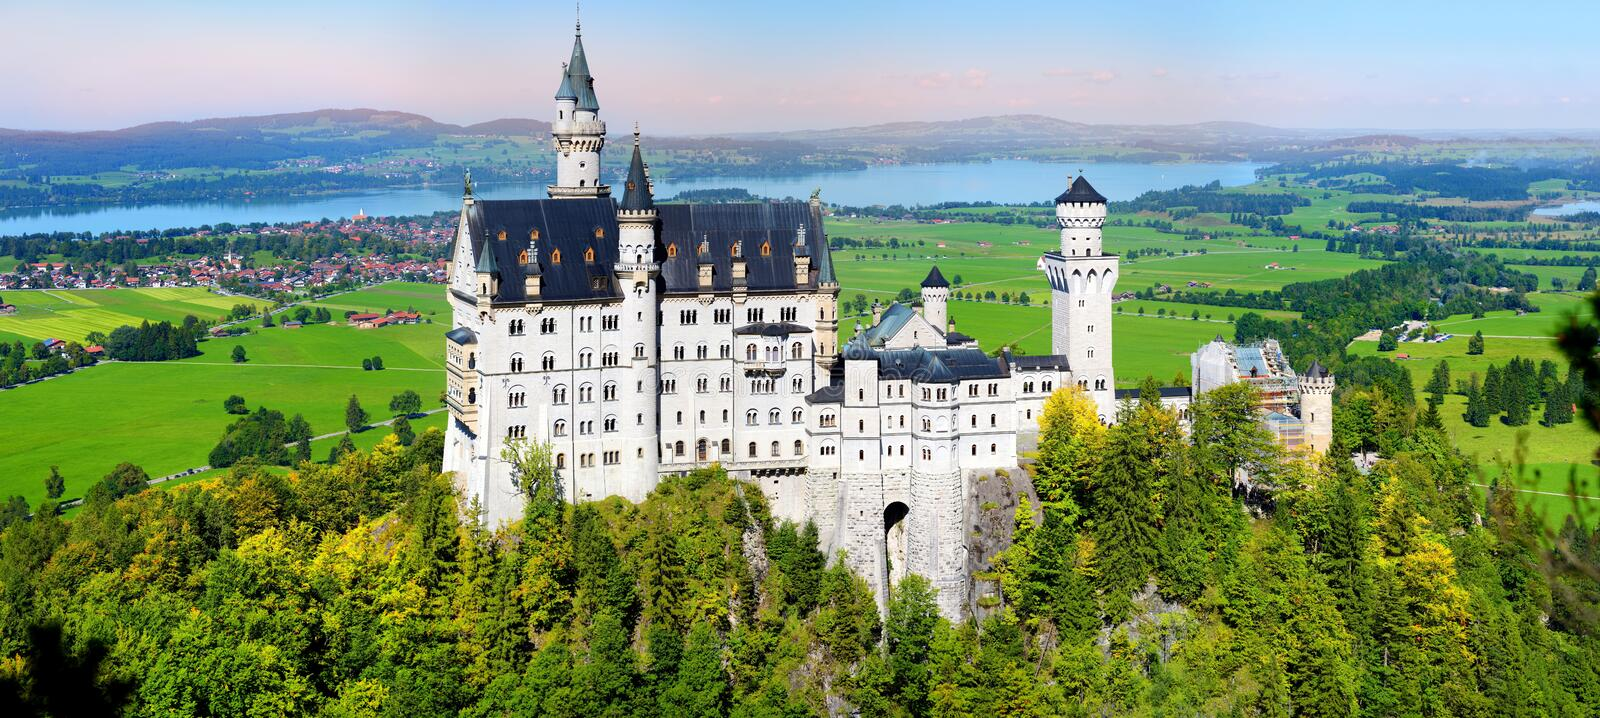 Famous Neuschwanstein Castle, fairy-tale palace on a rugged hill above the village of Hohenschwangau near Fussen stock photo